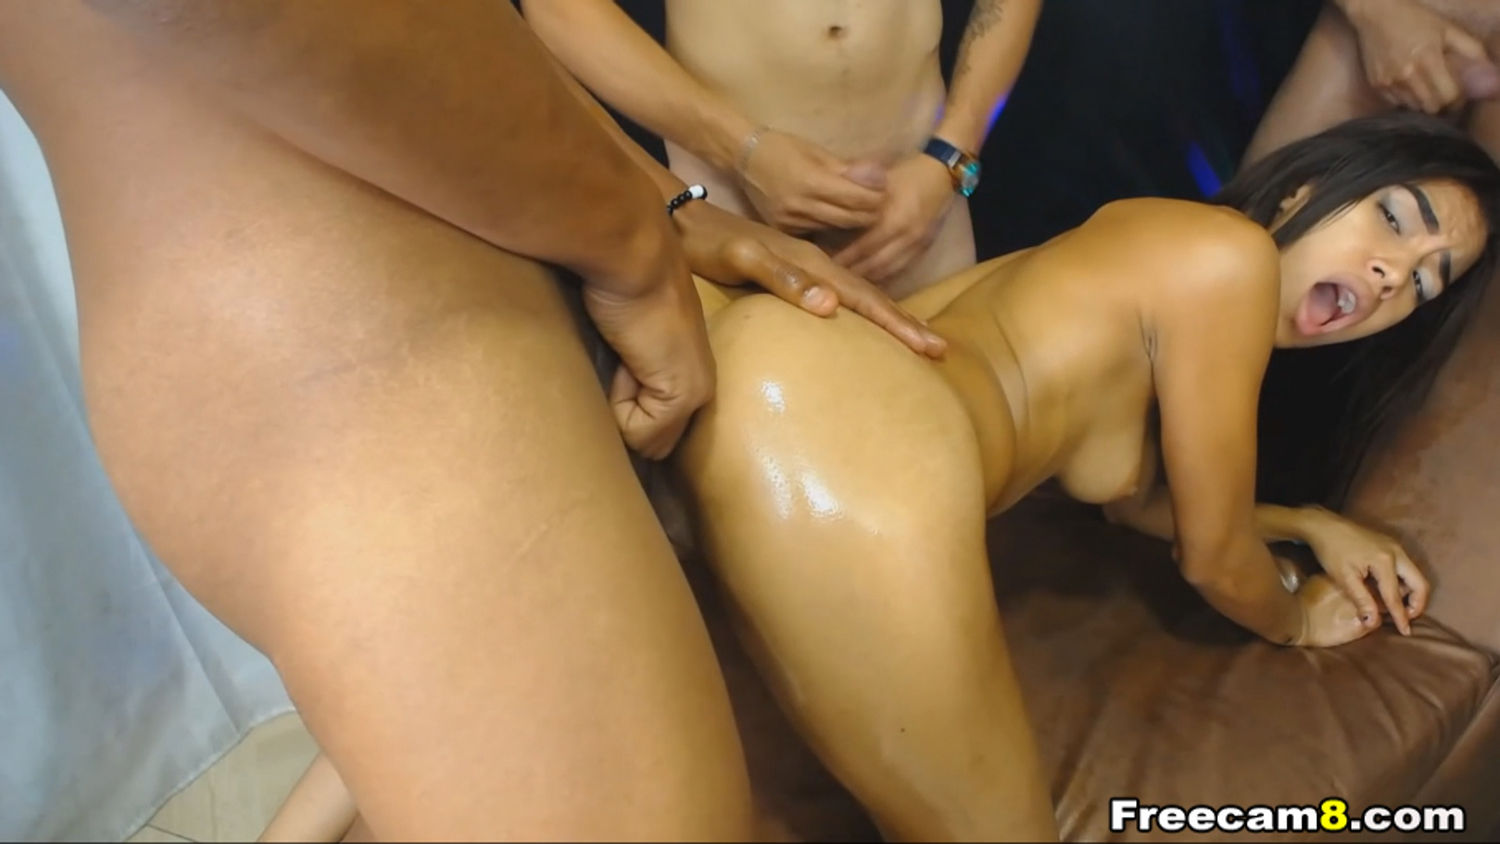 Latina Gives Blowjobs and Gets Analed